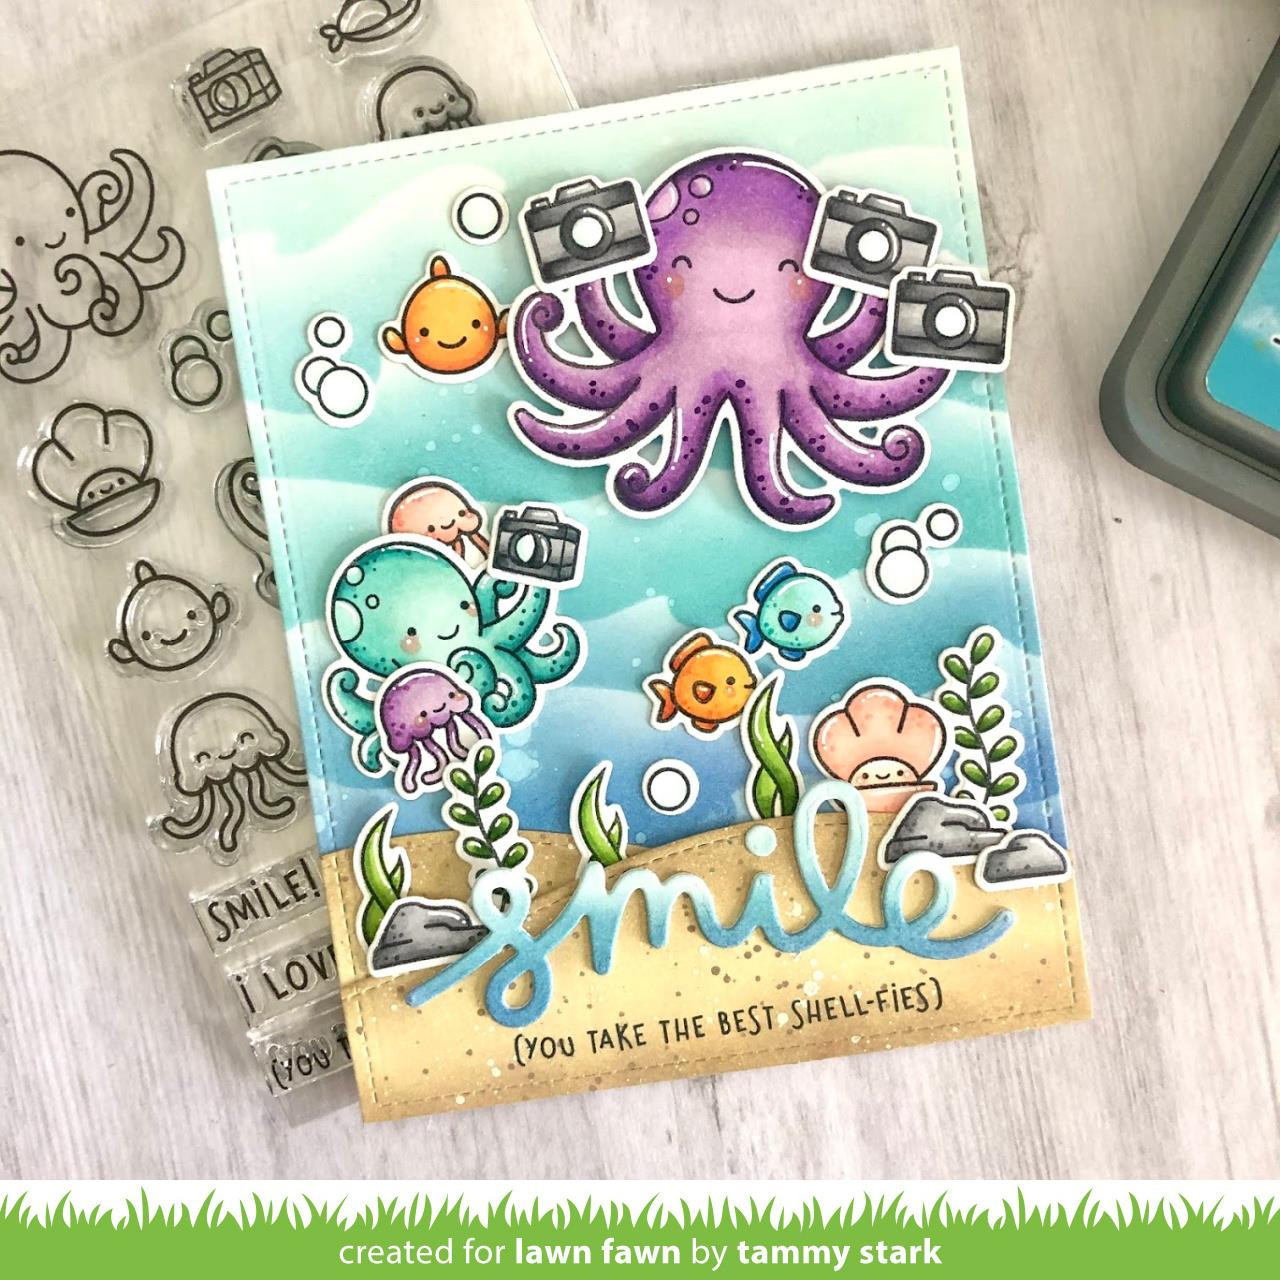 Ocean Shell-fie, Lawn Fawn Clear Stamps - 035292675568